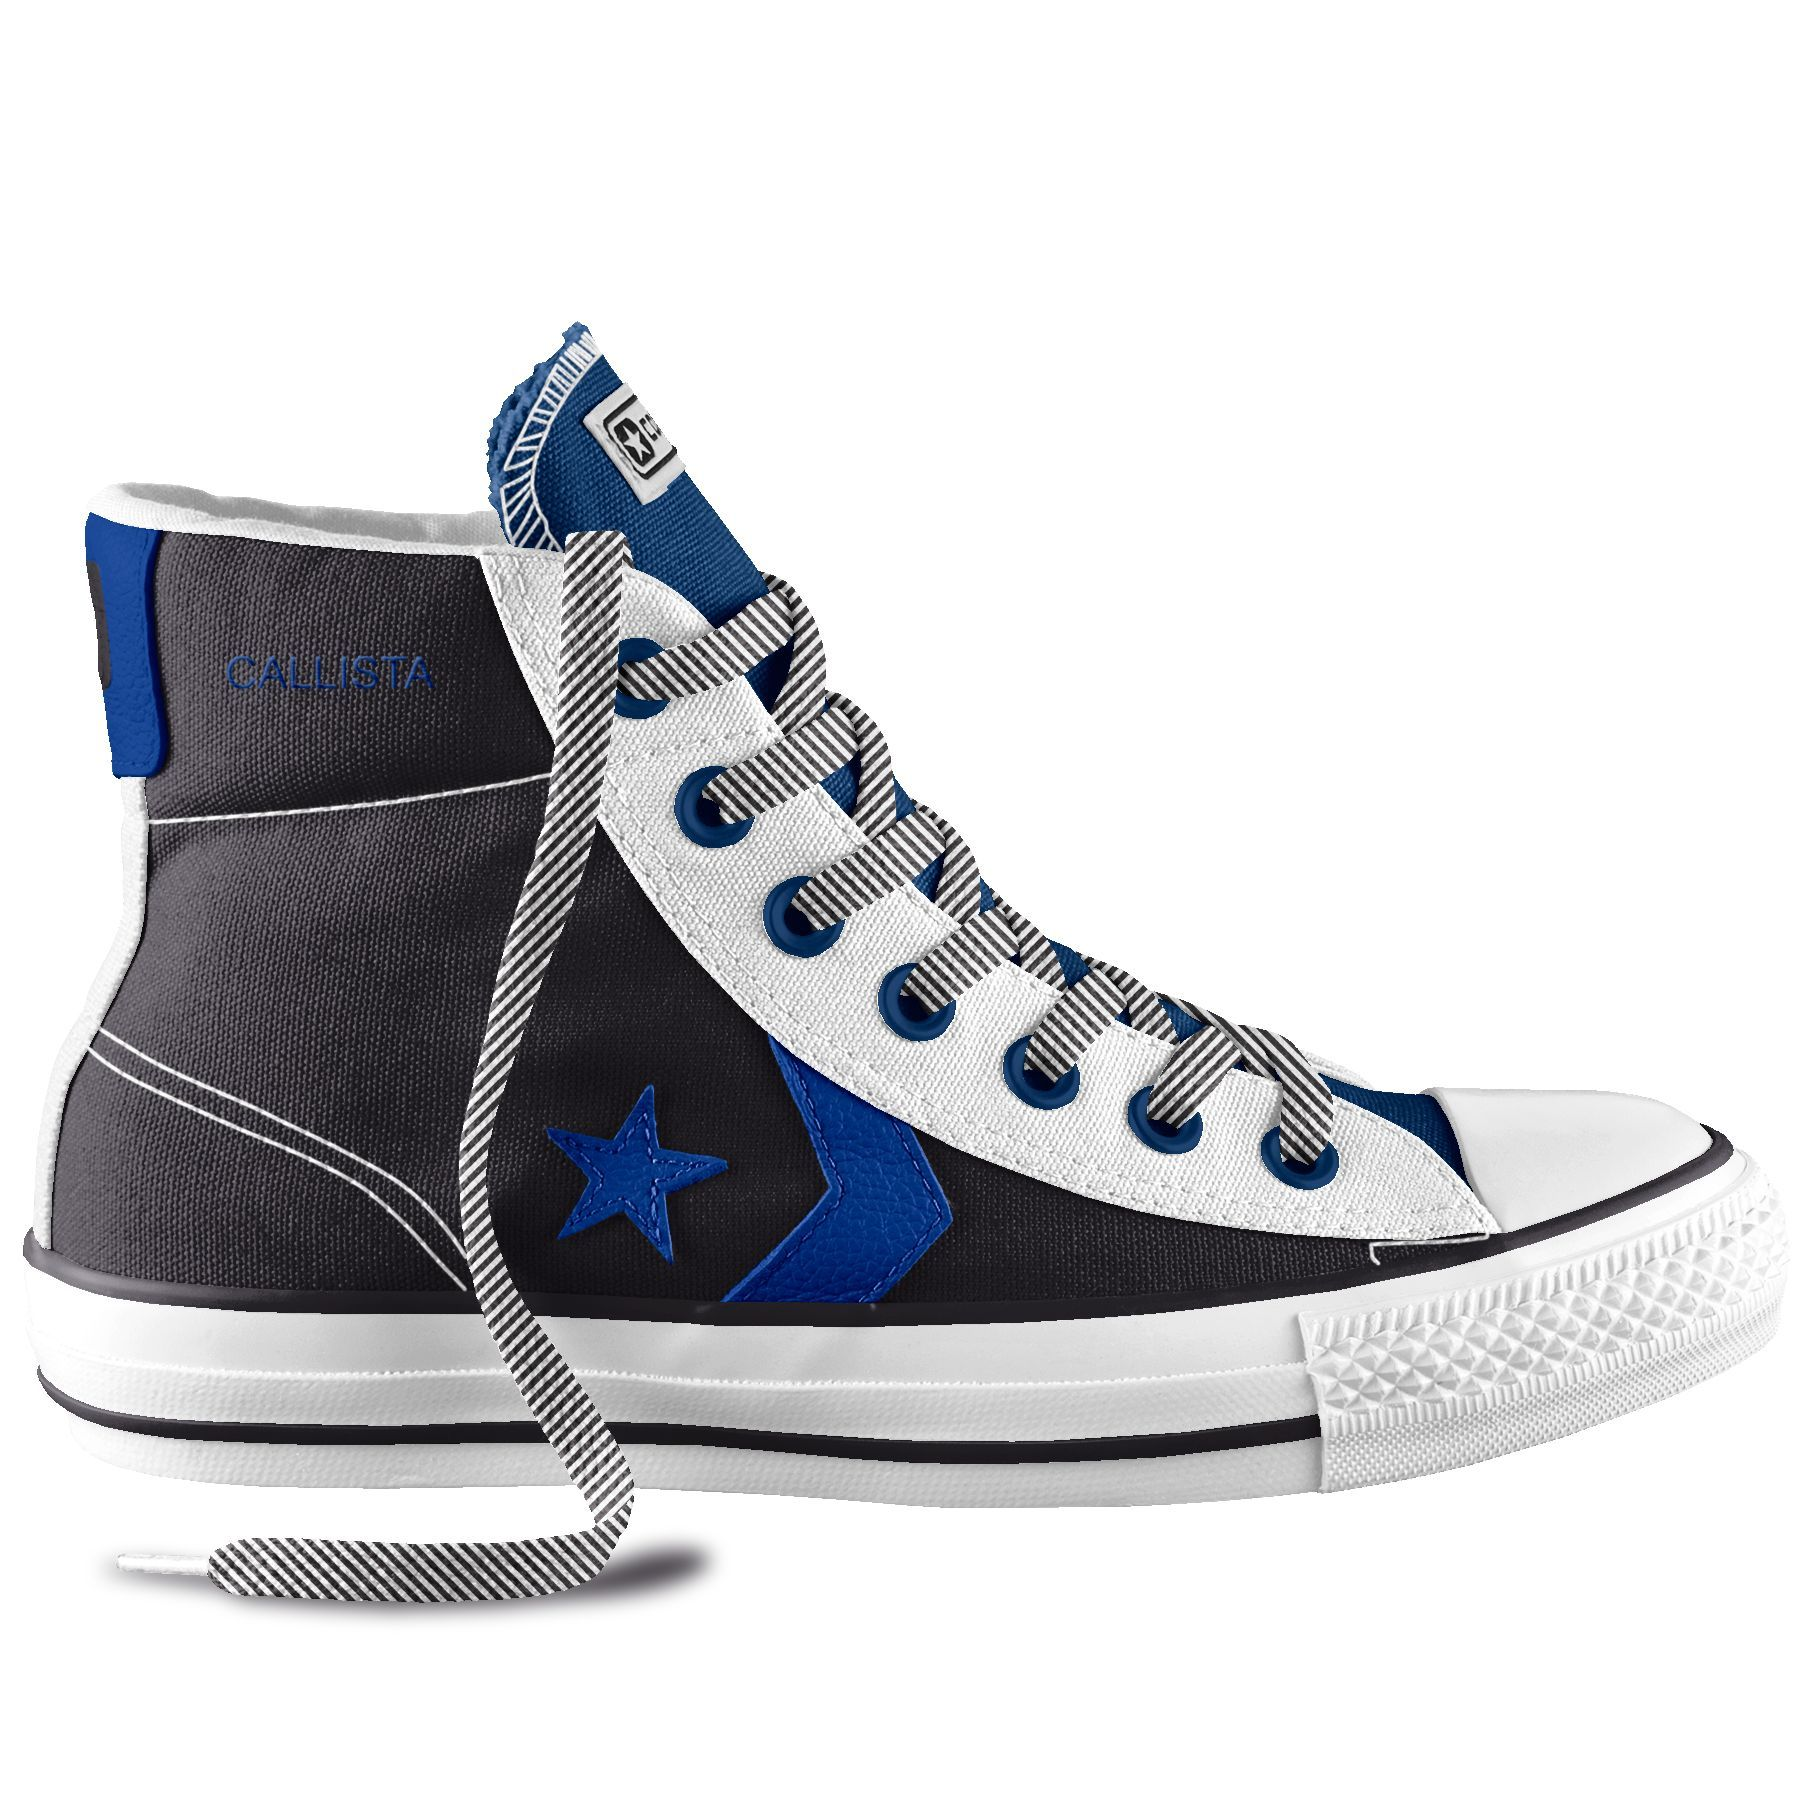 converse chuck taylor jack purcell basketball shoes design your